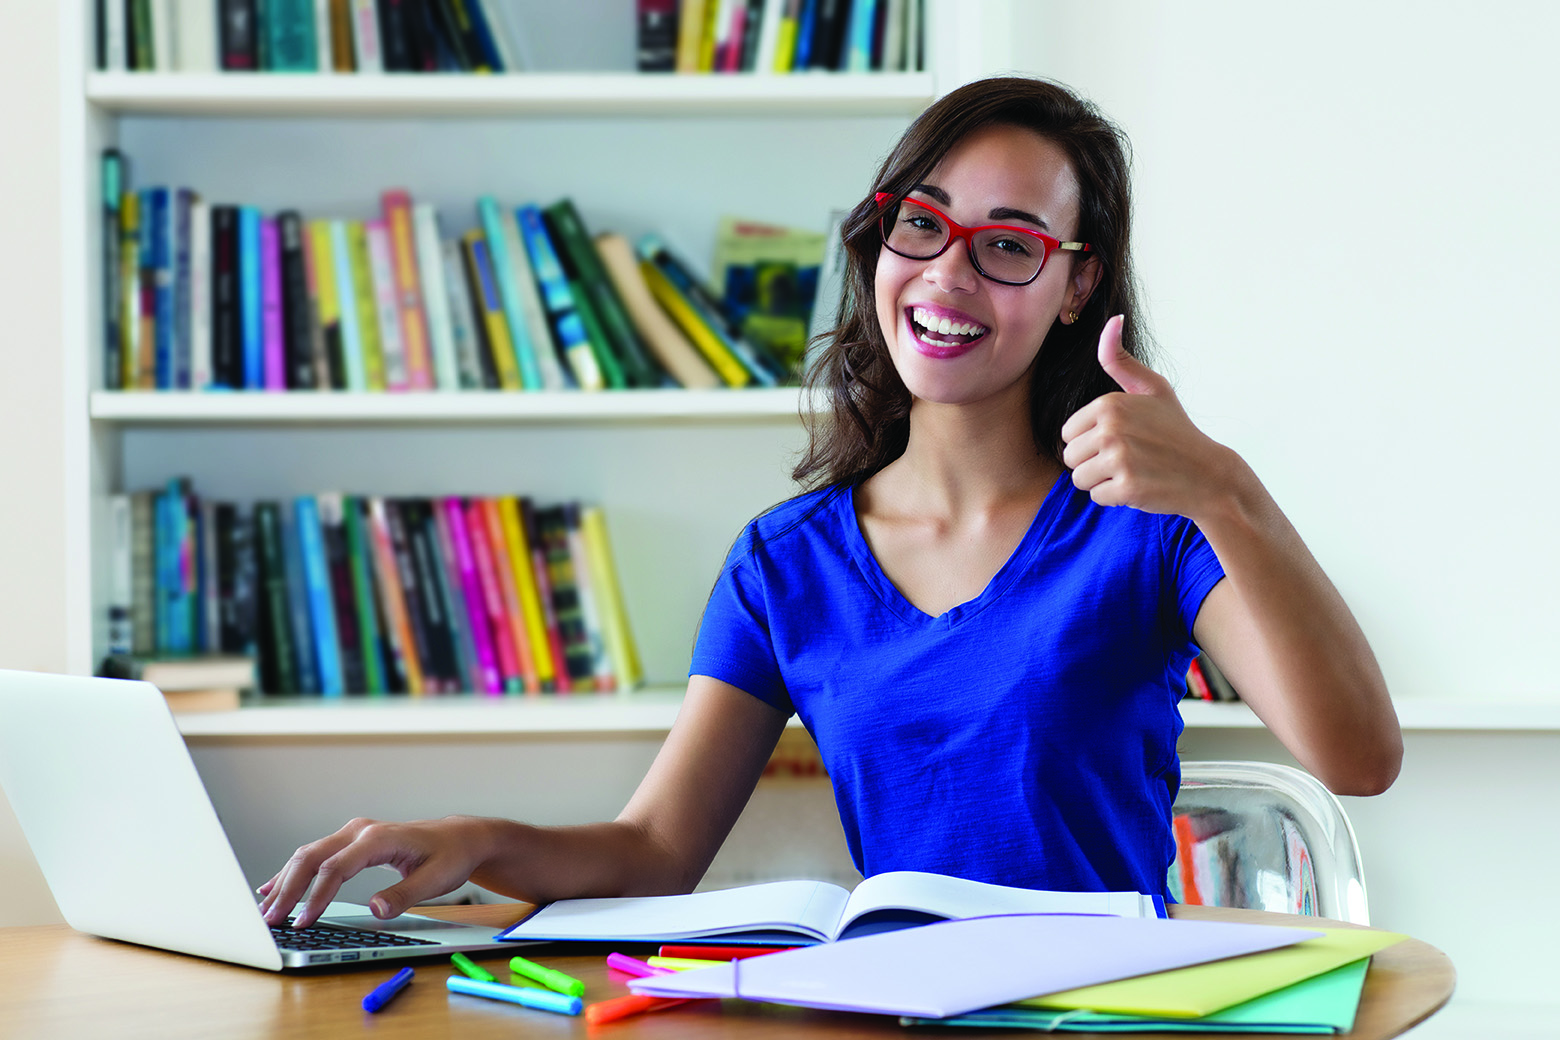 Successful French Female Student Learning On Computer